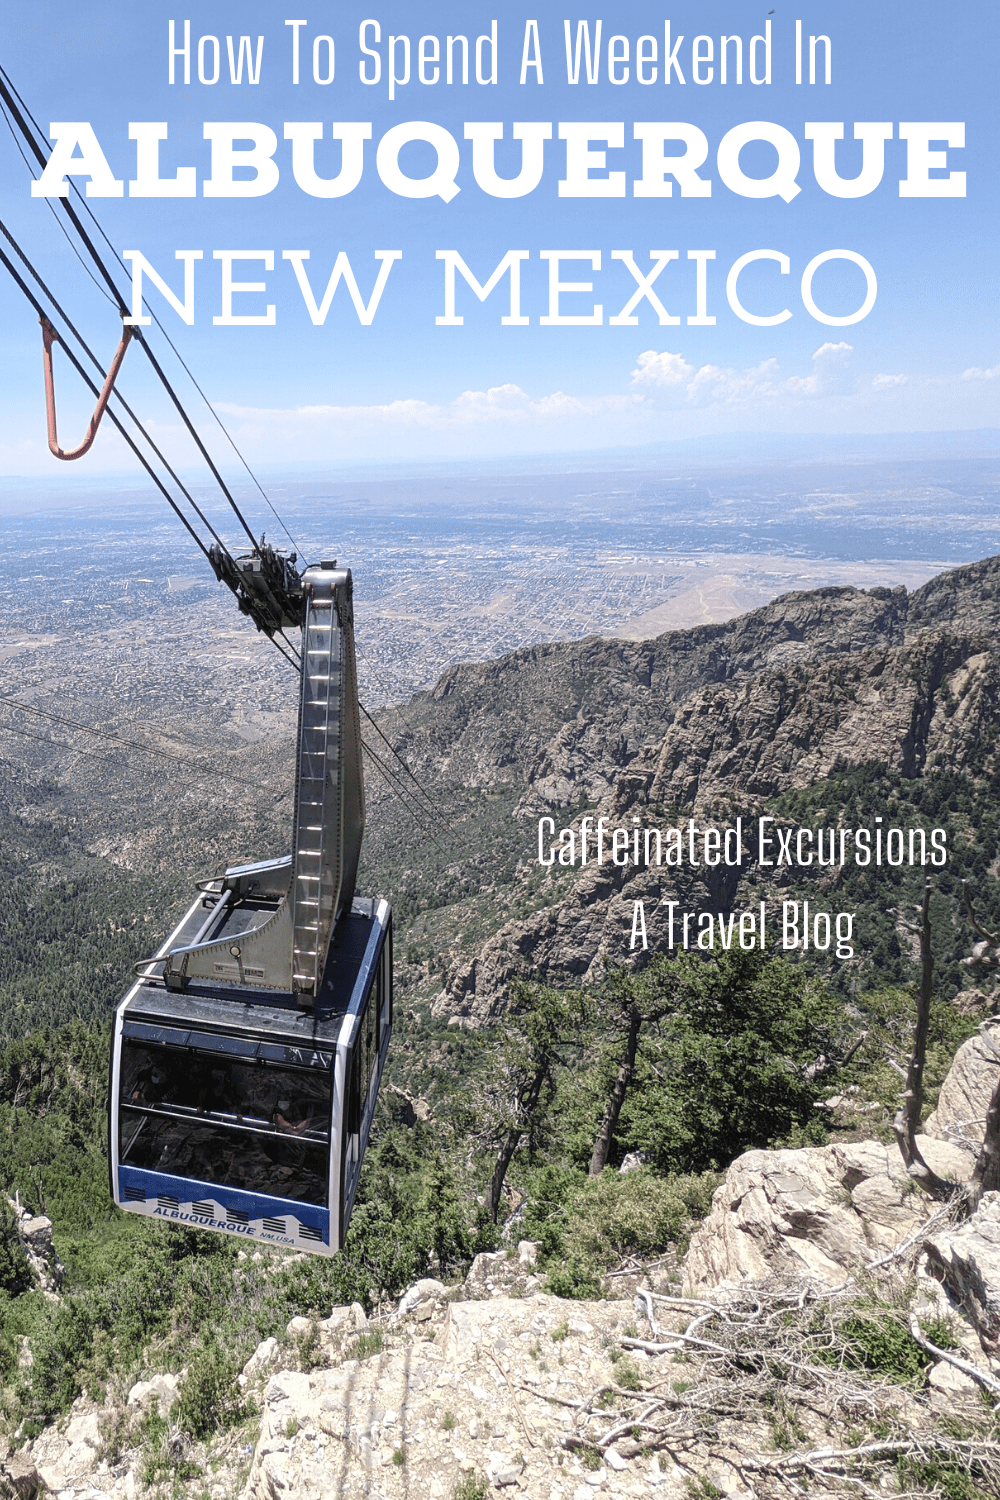 Albuquerque, New Mexico, is a perfect city to visit for a weekend (even better if you can go on a three-day weekend)! This blog post explains the best things to see, local foods to try, and neighborhoods to explore. If you're considering a trip to Albuquerque, be sure to check out this post to make the most of your time there!